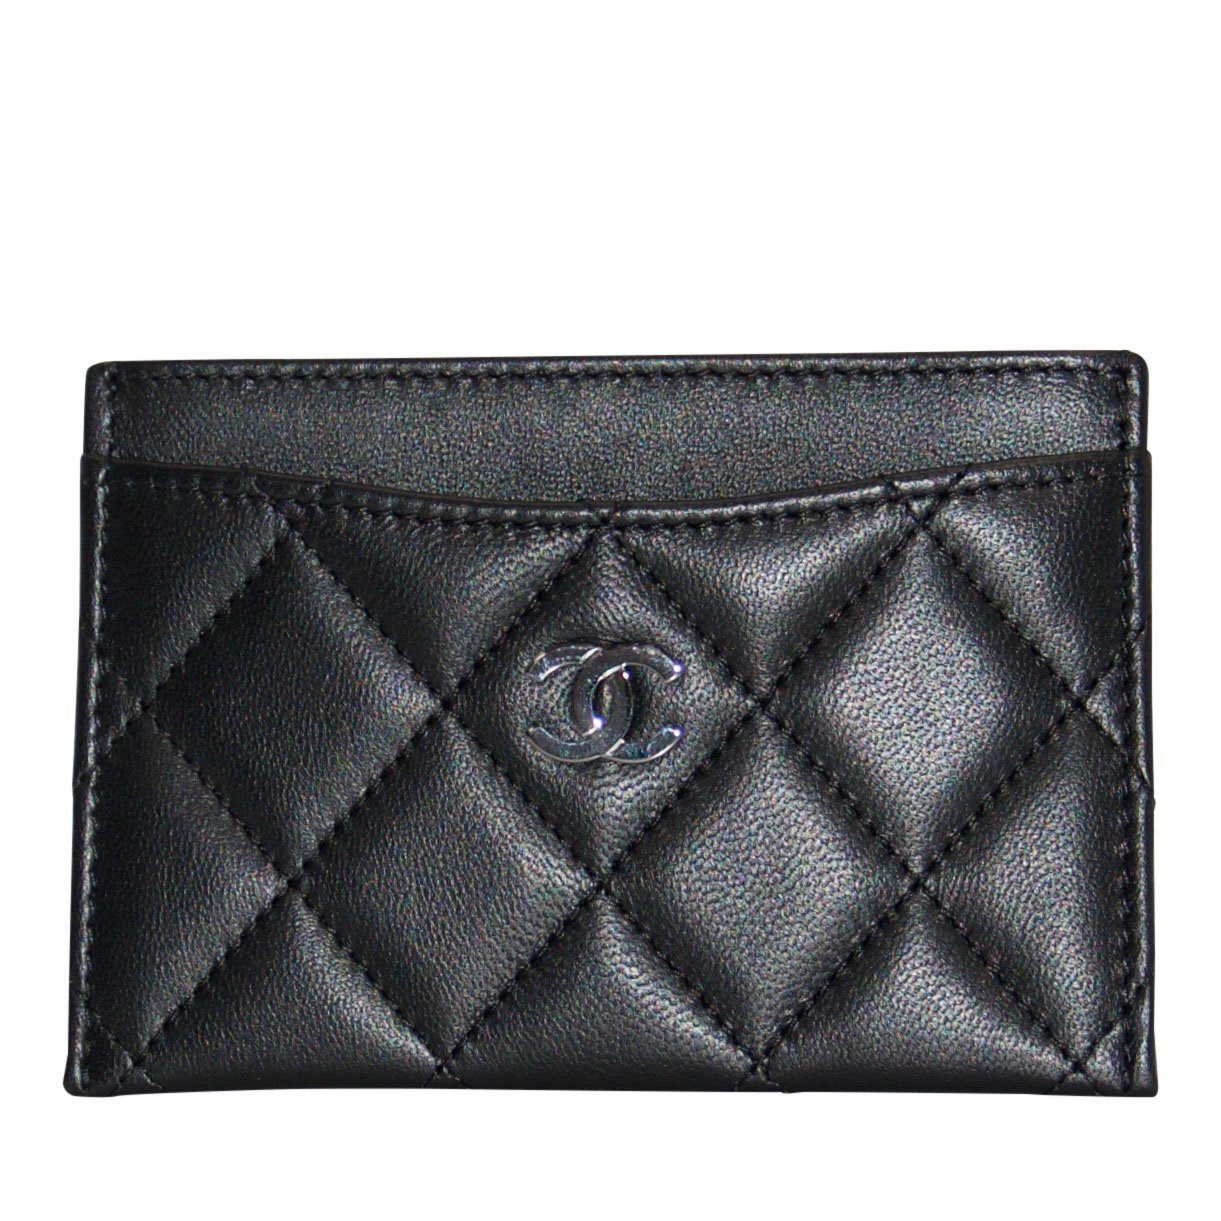 3000abd0f30645 Chanel Black Lambskin Classic Card Holder Wallets Chanel ...